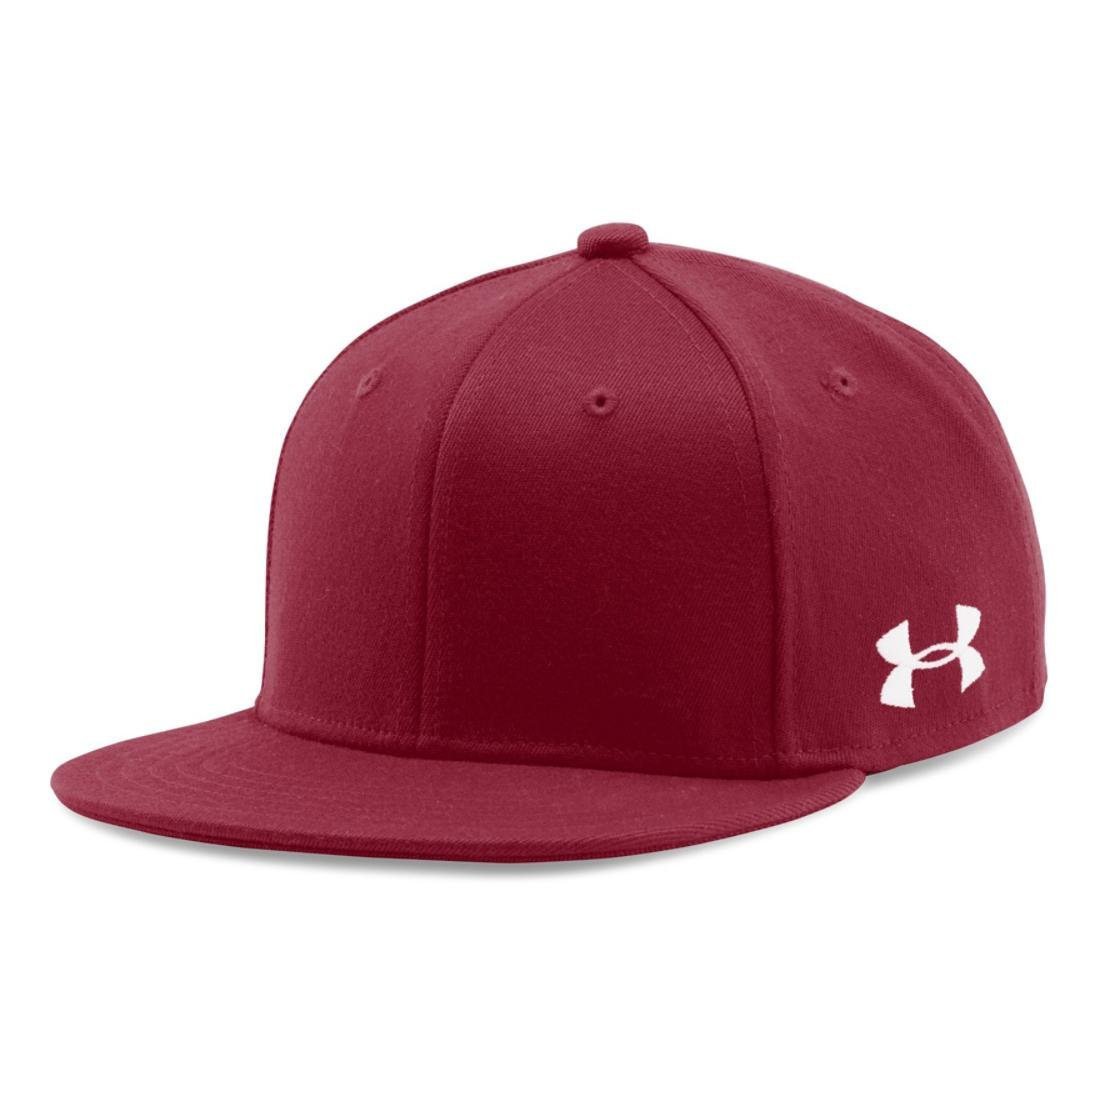 Under Armour Men's UA Flat STR, Card Red/Wh 625, XL/XXL